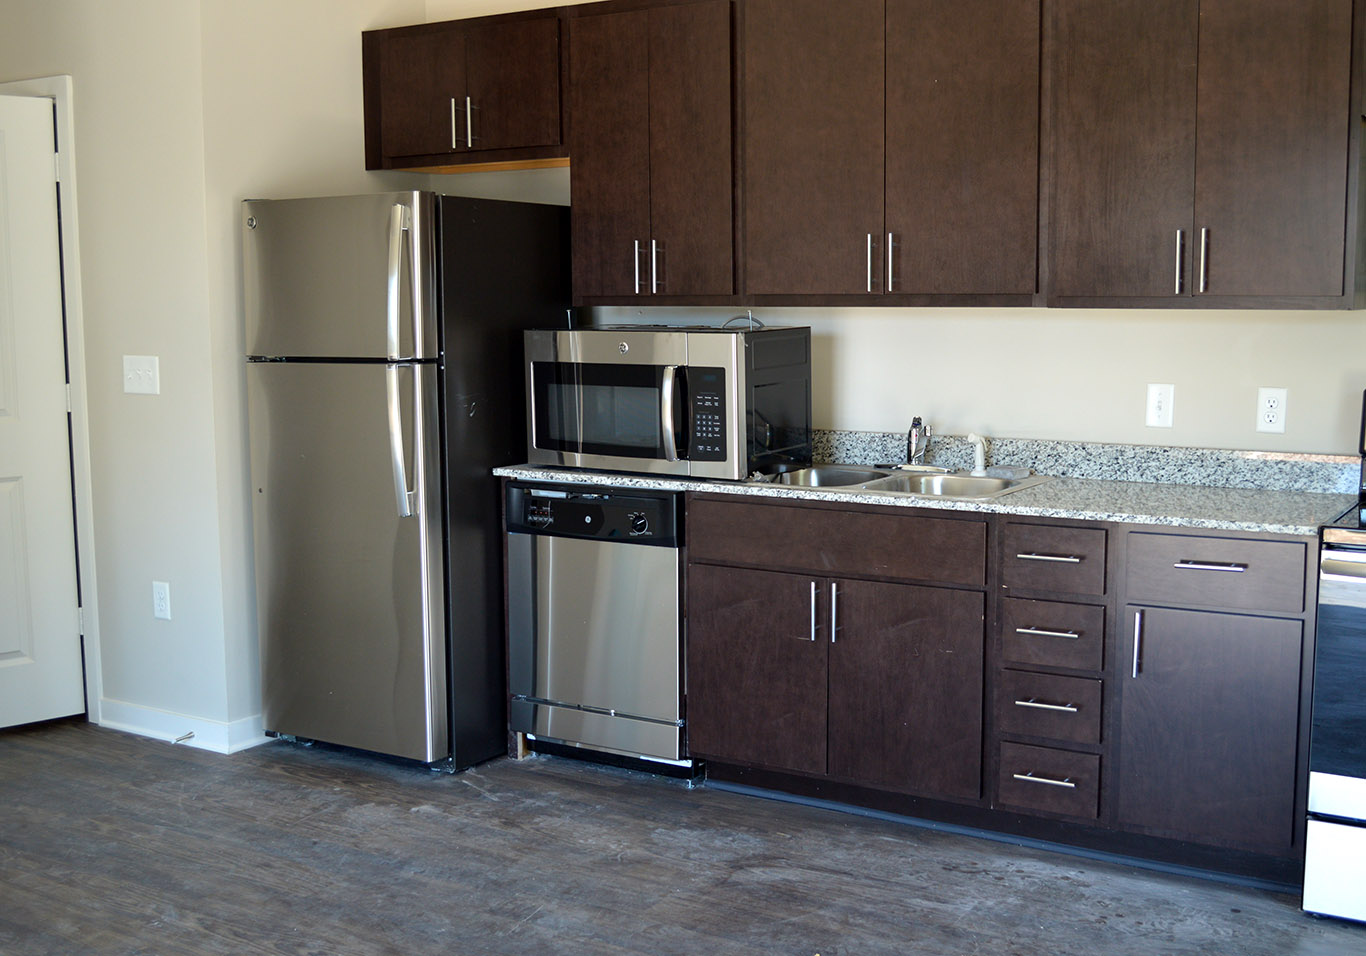 Lavish open kitchens with sprawling granite countertops really give the apartments at Main & Stone an amazing open concept